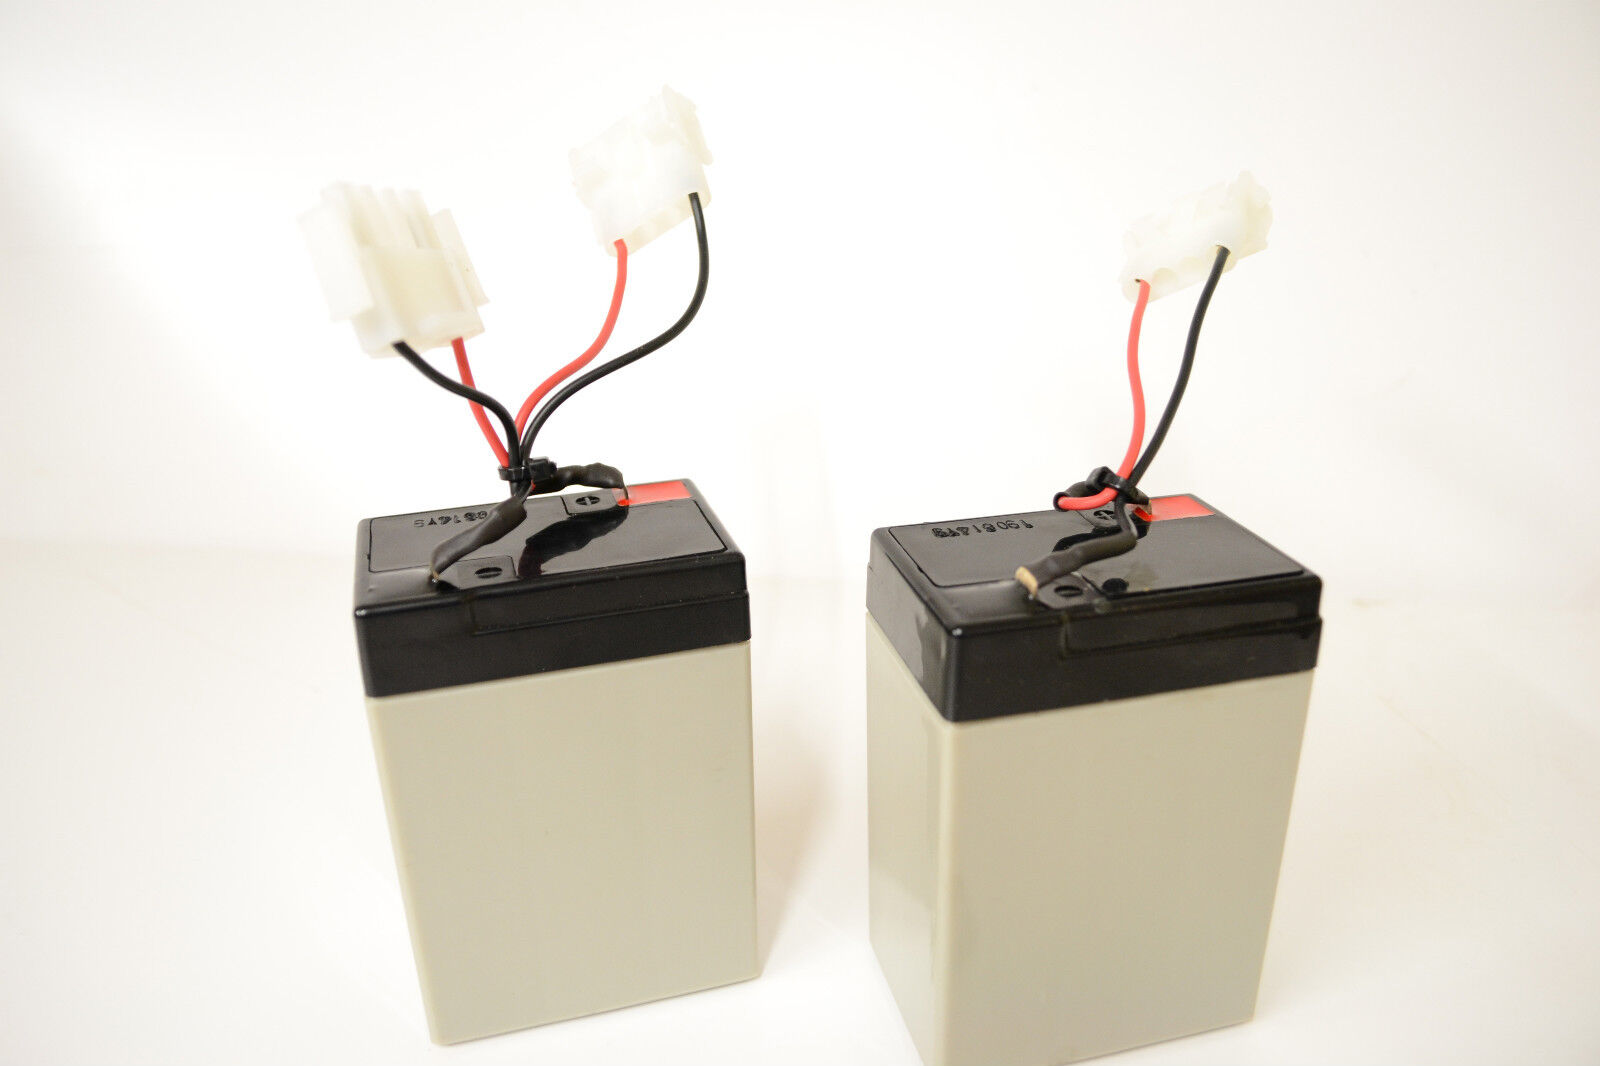 Batteries for Anatec PAC Bait Boat